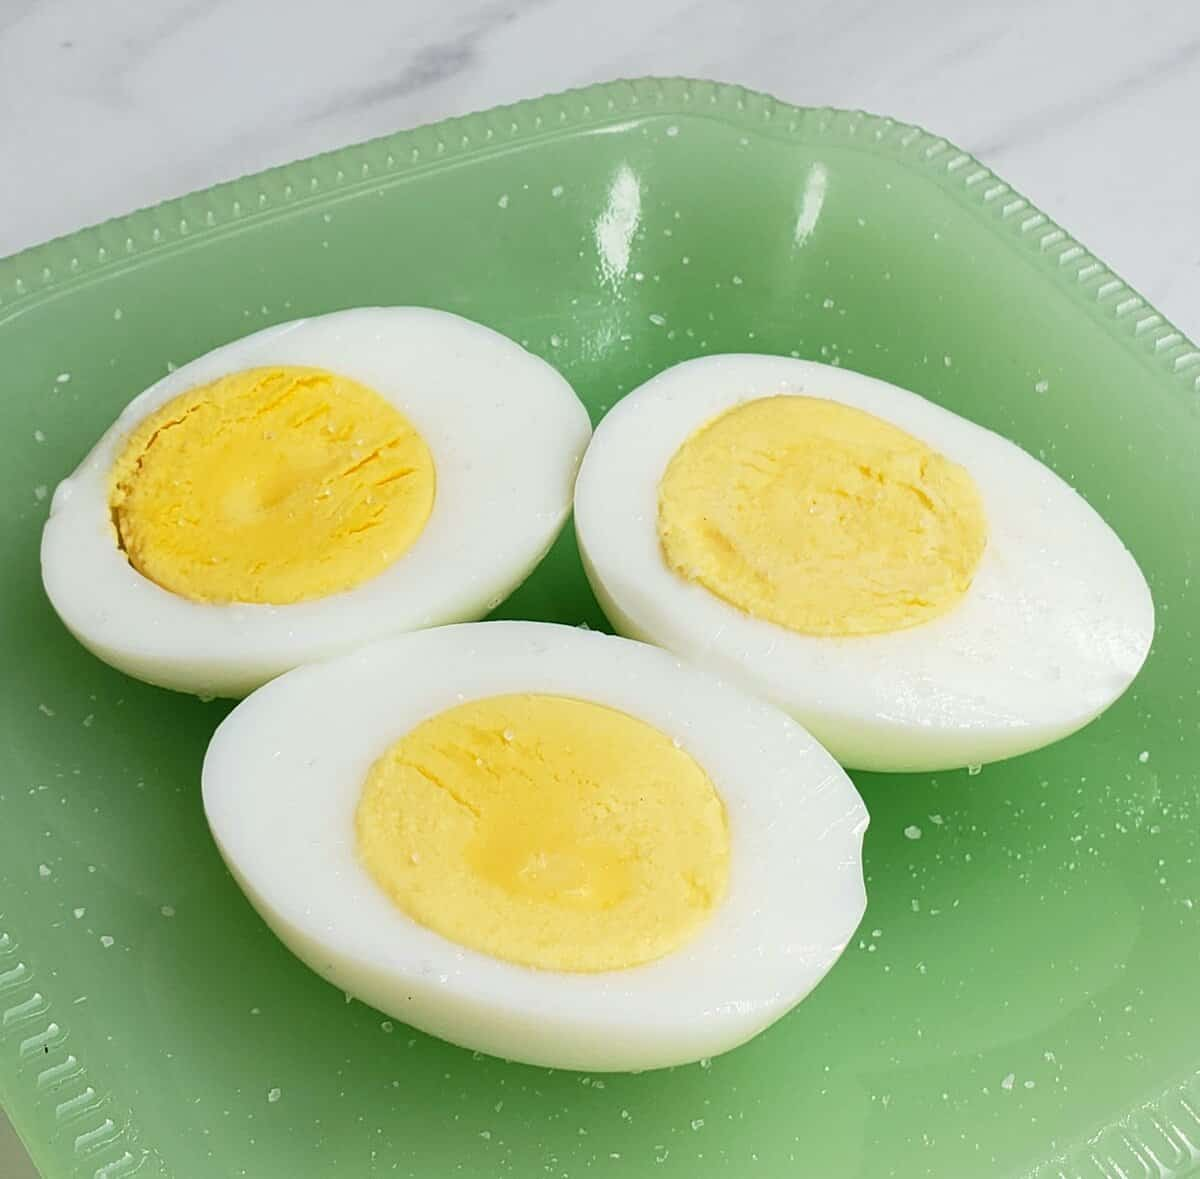 hard cooked eggs cut in half on a green plate